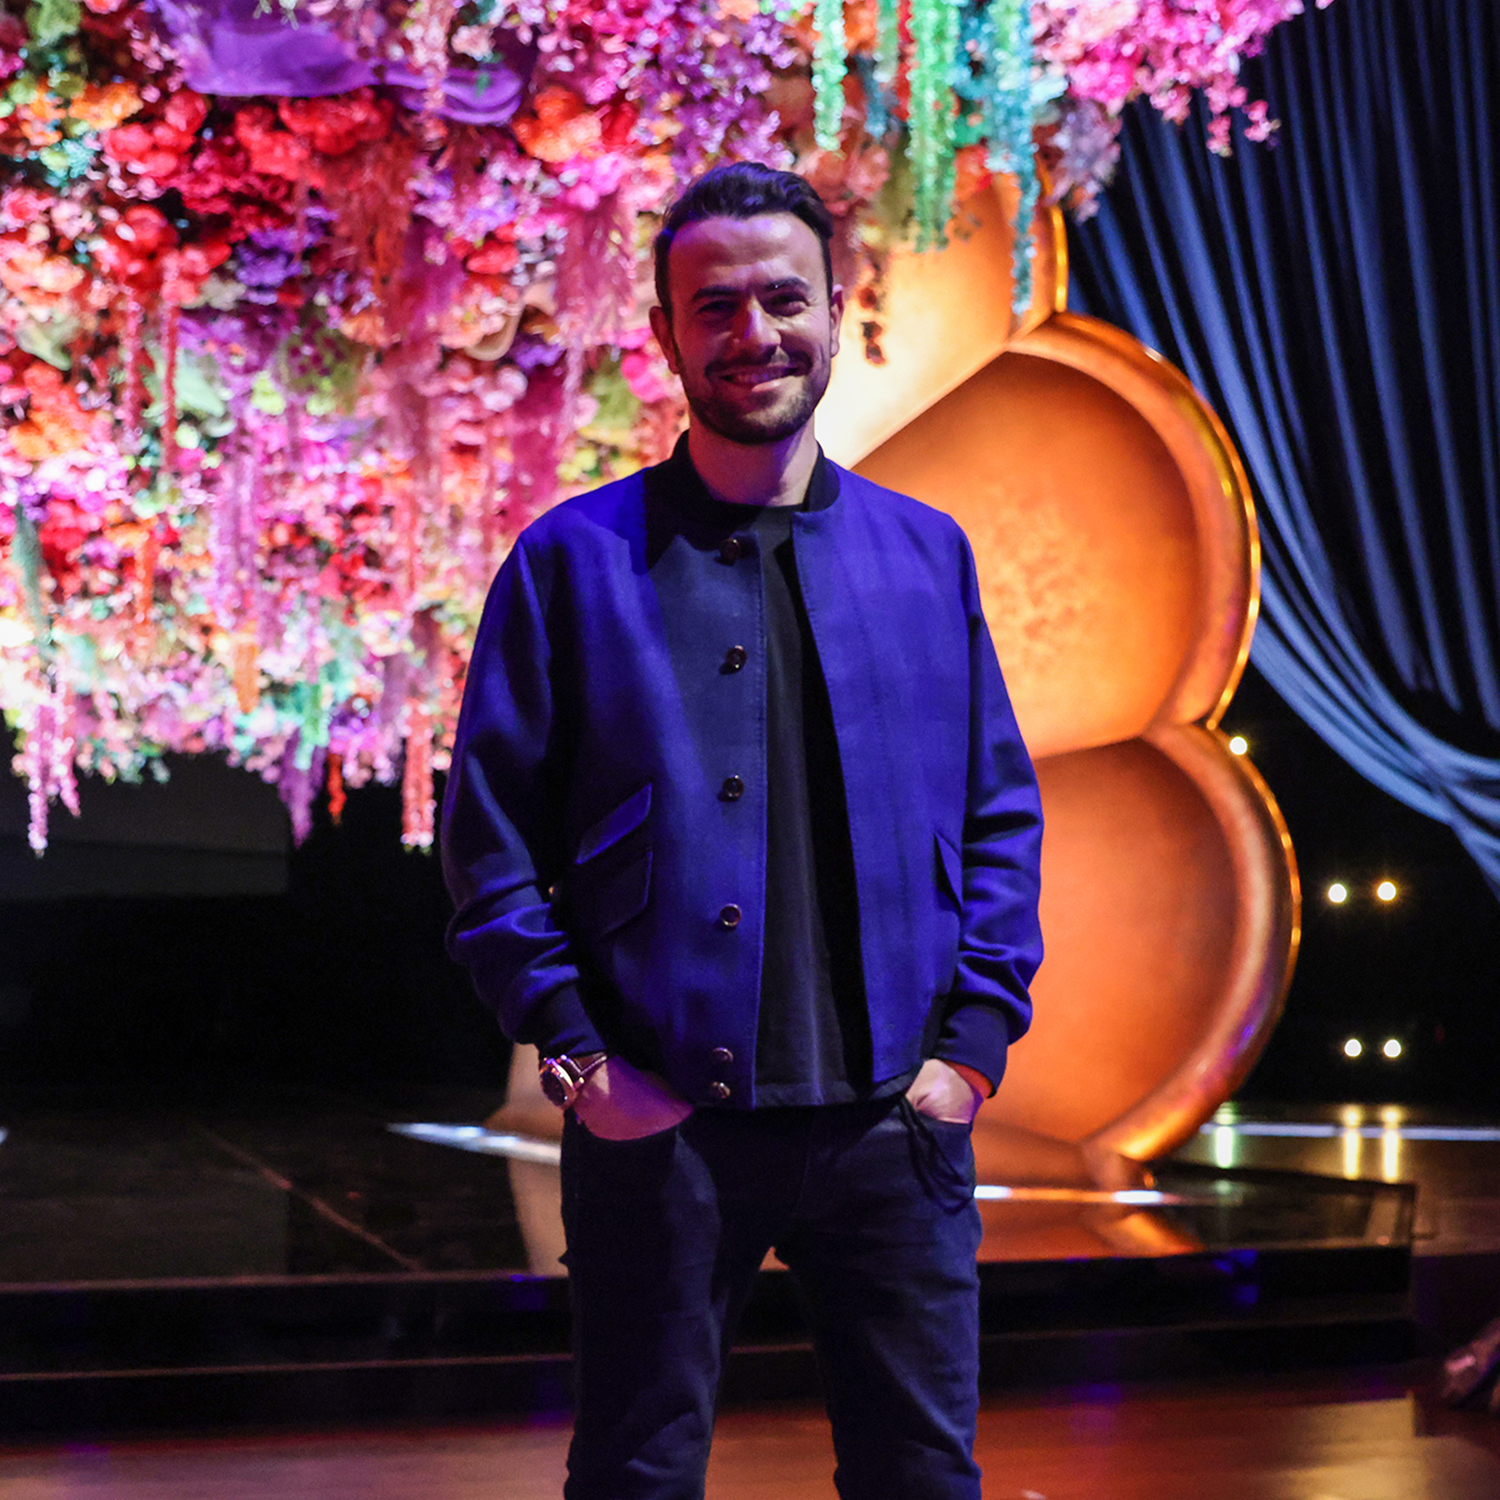 **PHOTOS EMBARGOED PRIOR TO GRAMMYS TELECAST. DO NOT PUBLISH BEFORE 3/14/2021Los Angeles, CA, Thursday, March 11, 2021 - Grammy Executive Producer Ben Winston on set during a pre-taped segment for the 63rd Grammys at the LA Convention Center. (Robert Gauthier/Los Angeles Times via Getty Images)